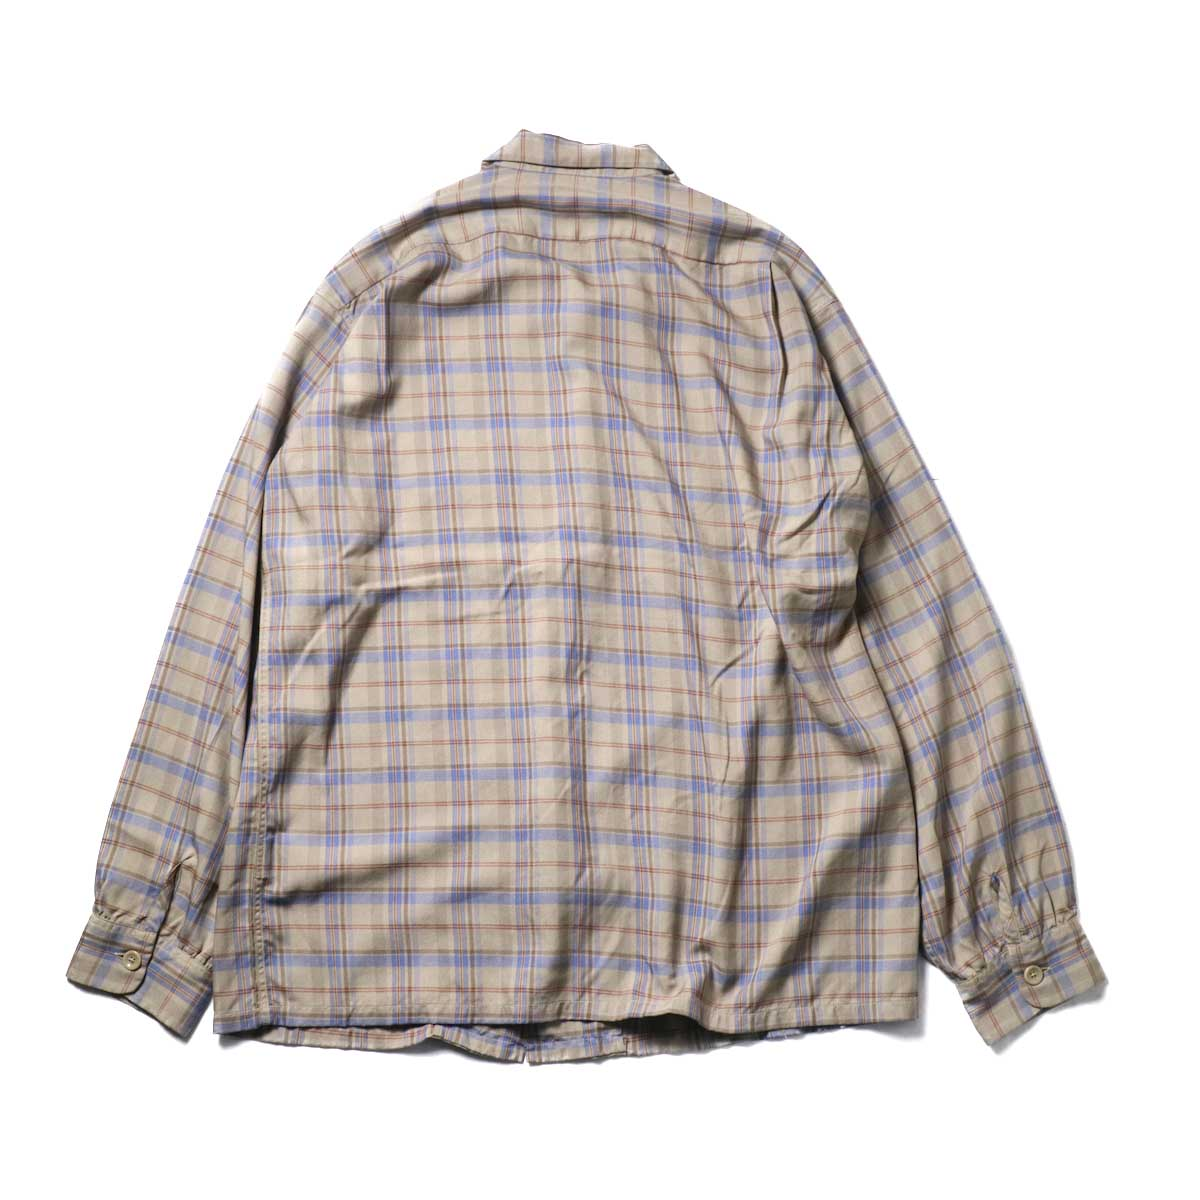 TOWN CRAFT / CLASSIC CHECK OPEN SHIRTS (Beige)背面